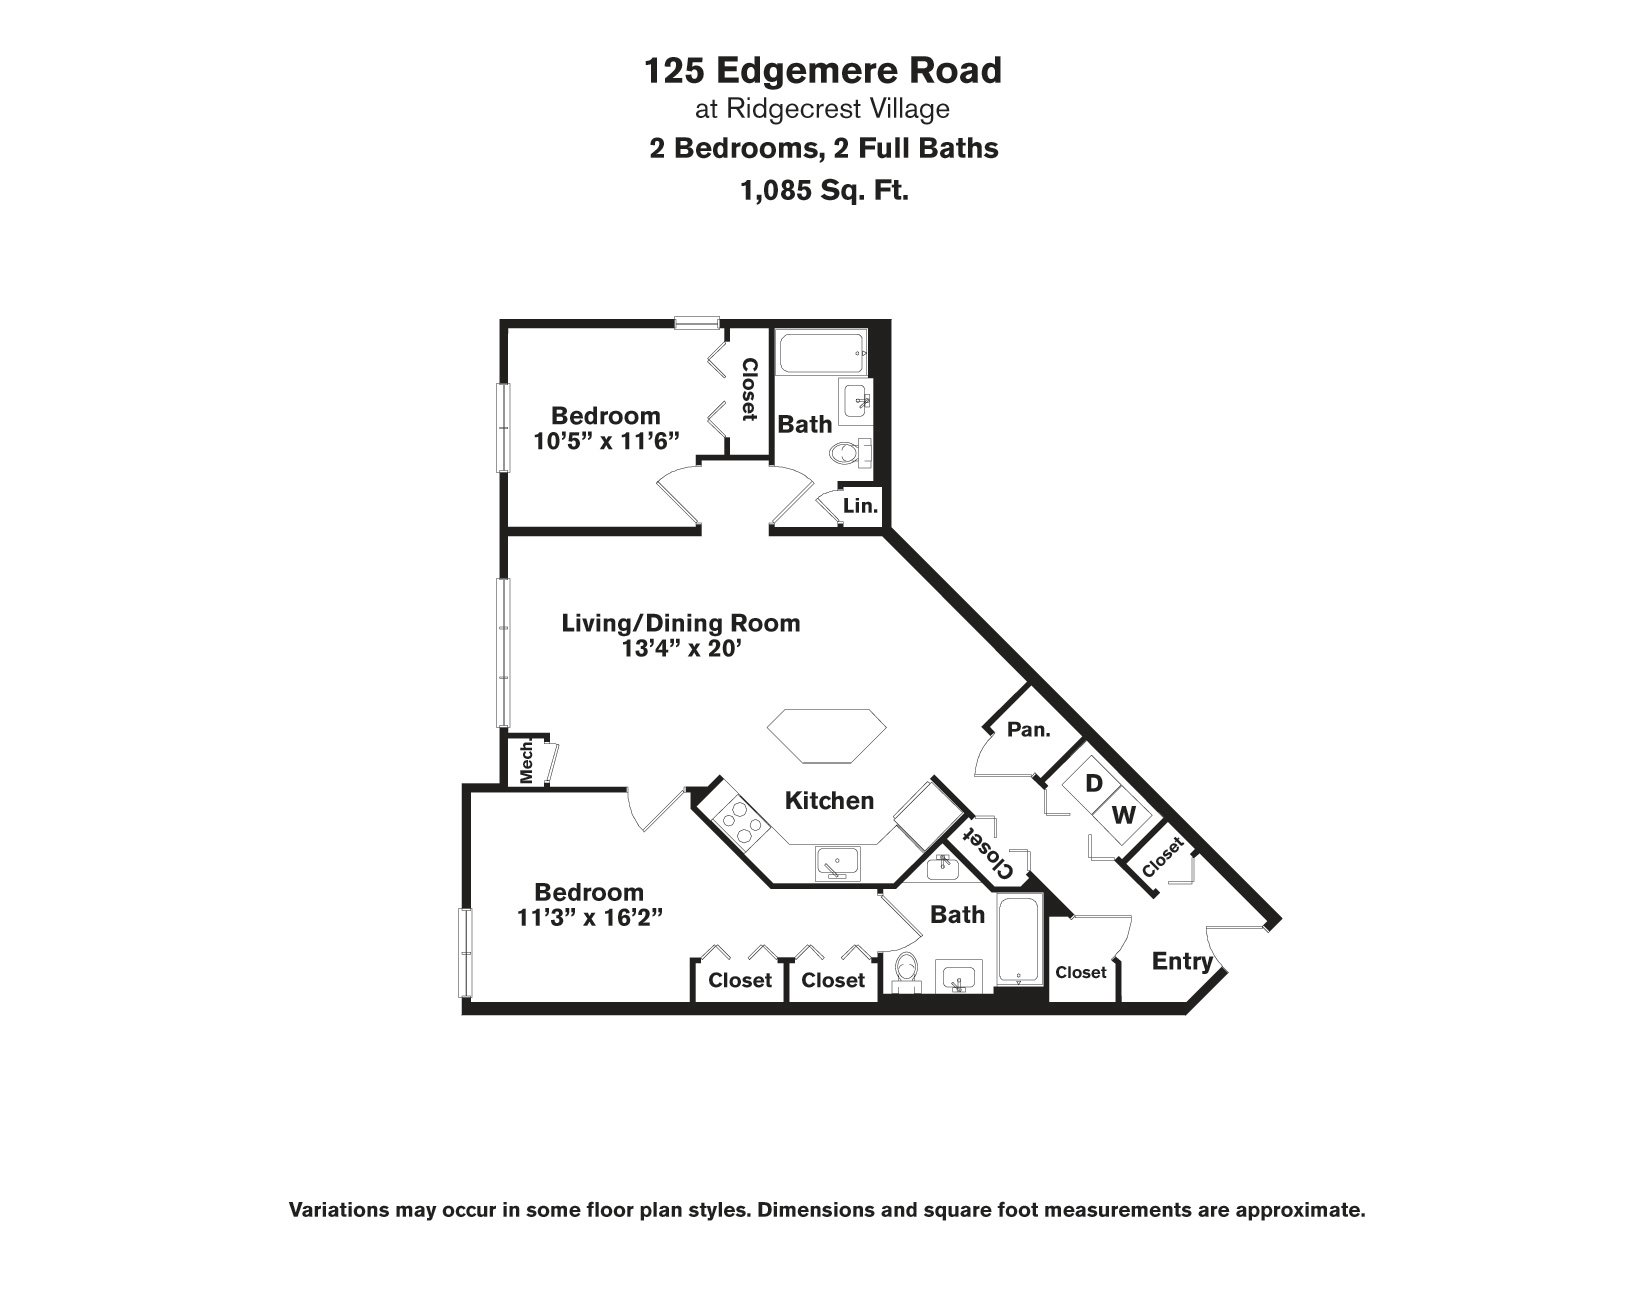 Click to view Floor plan 2 BR - Edgemere image 1